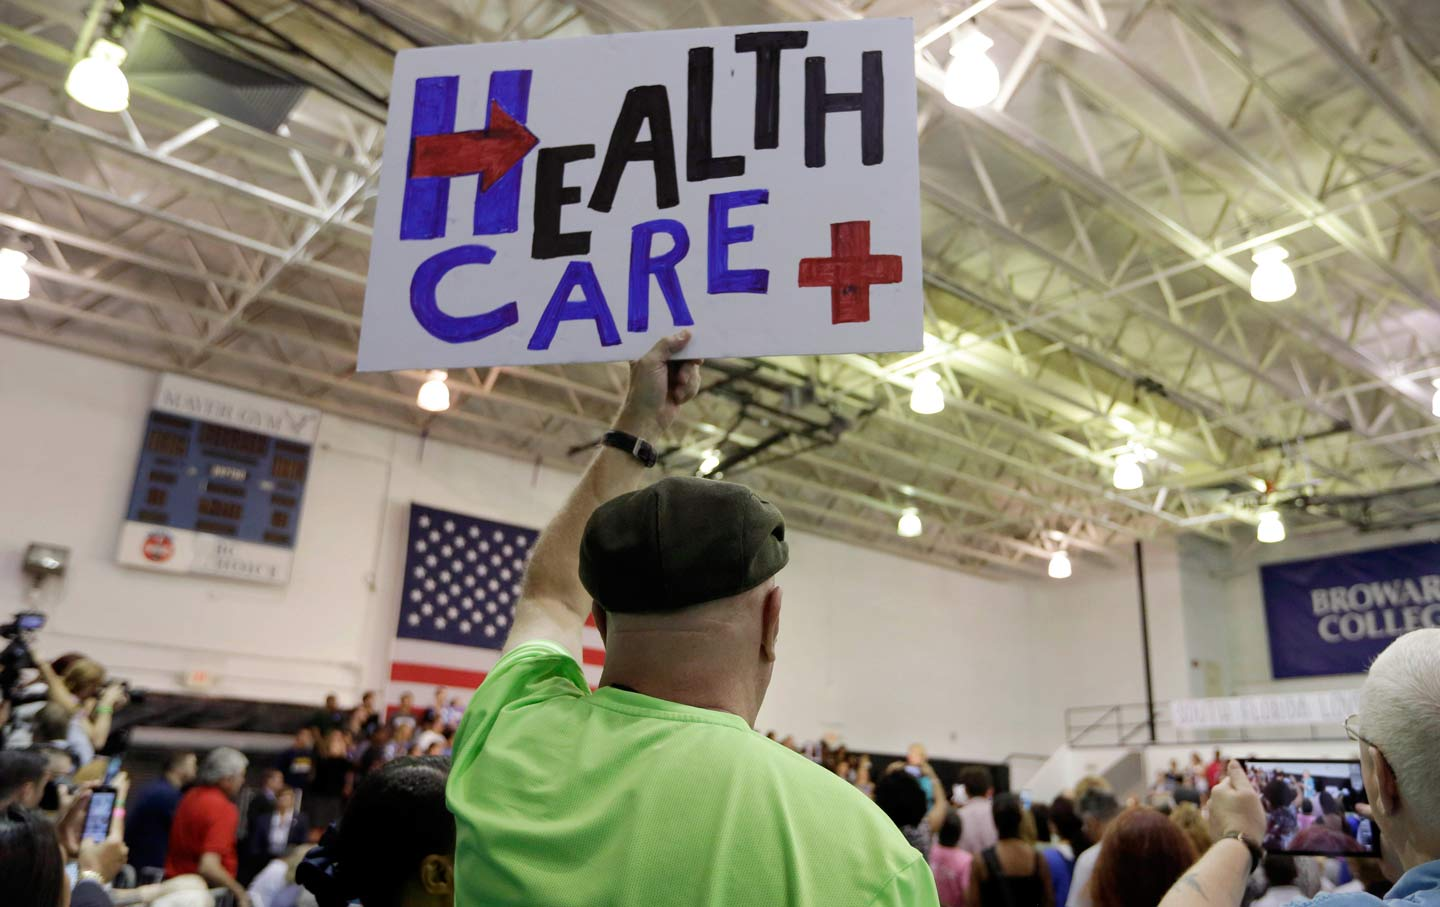 Clinton supporter holds up healthcare sign